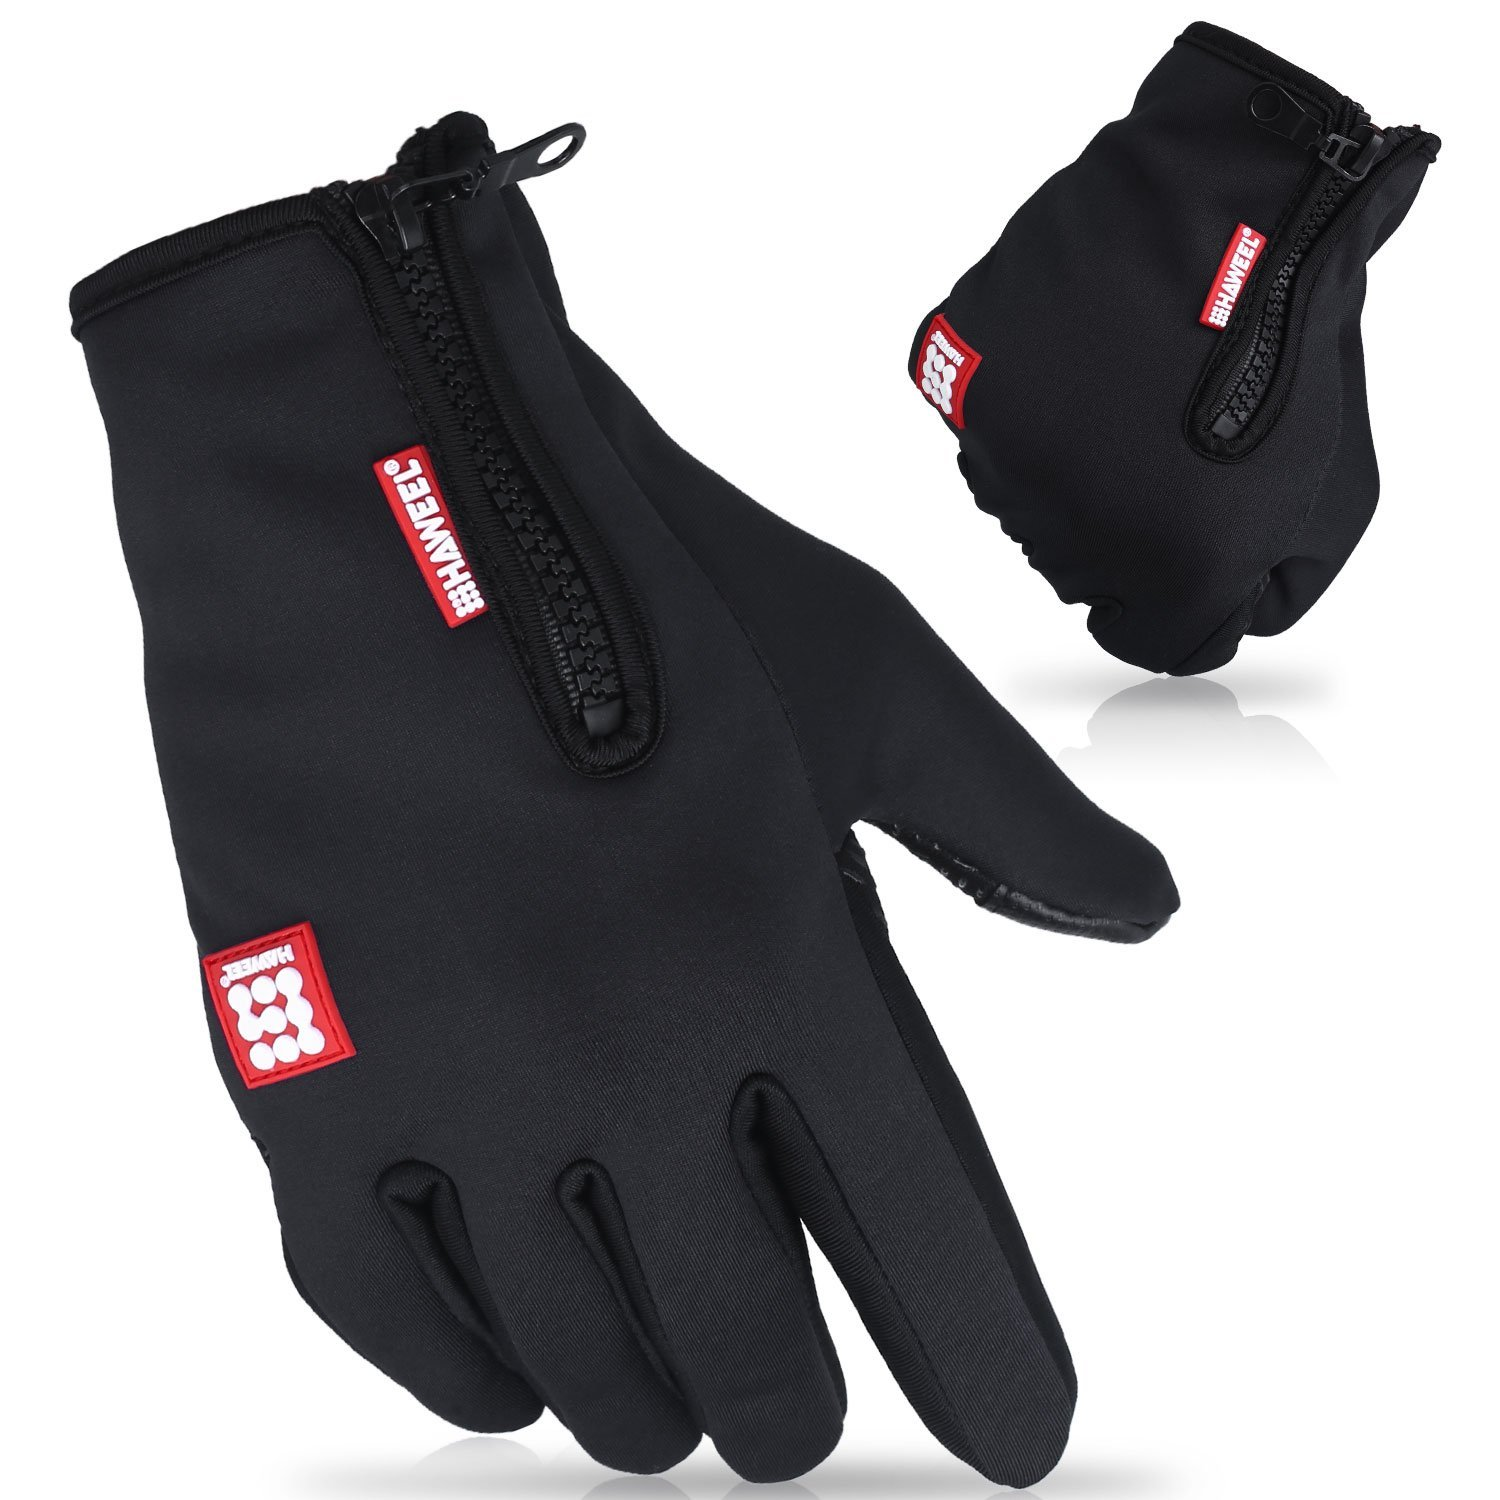 Mens gloves use iphone - Cido Winter Gloves Outdoor Sports Wind Stopper Cold Weather Touch Screen Gloves For Women Men